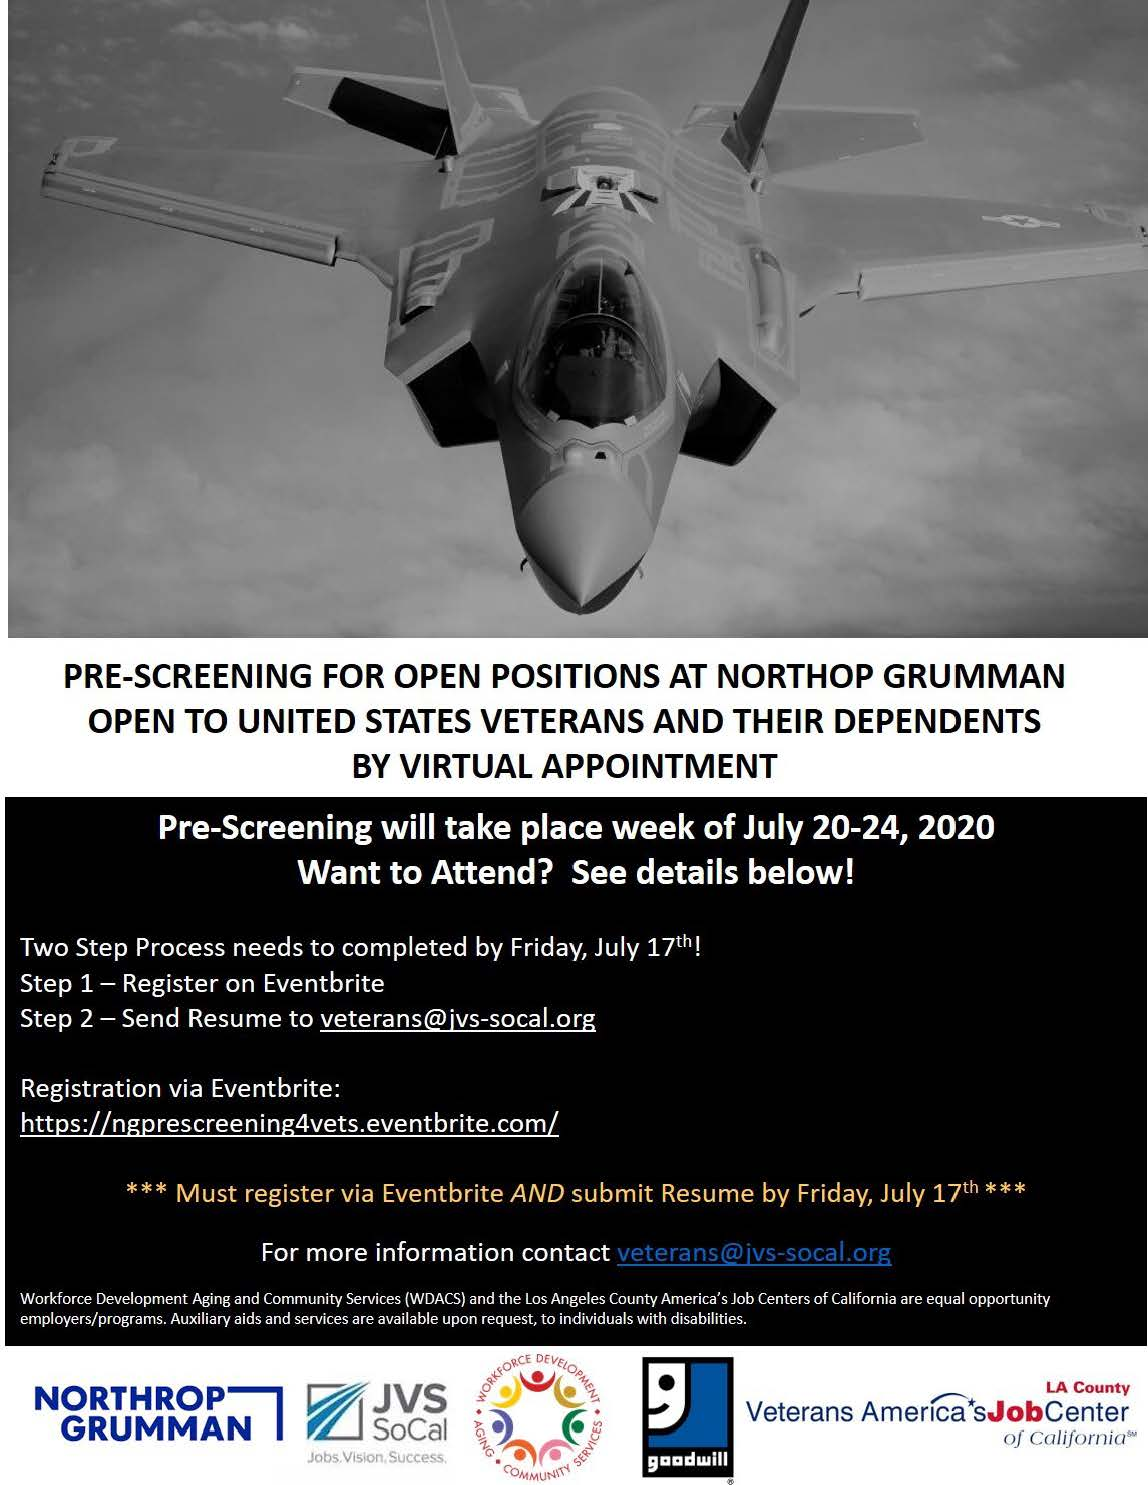 Northrop Grumman is seeking to hire veterans and their dependents.